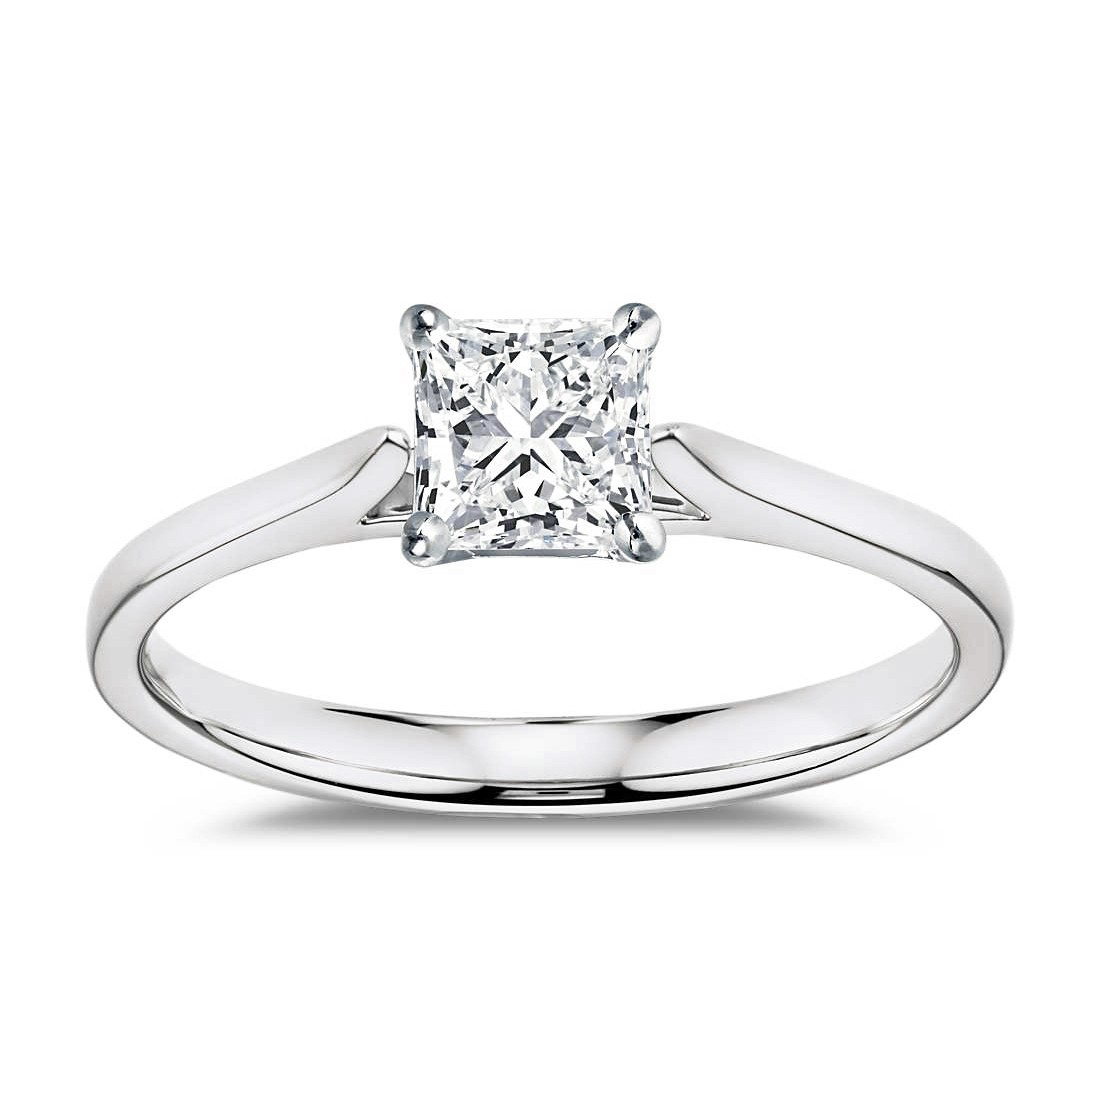 14K White Gold Certified Princess Cut Diamond Solitaire With Regard To Current Certified Diamond Anniversary Bands In White Gold (View 16 of 25)